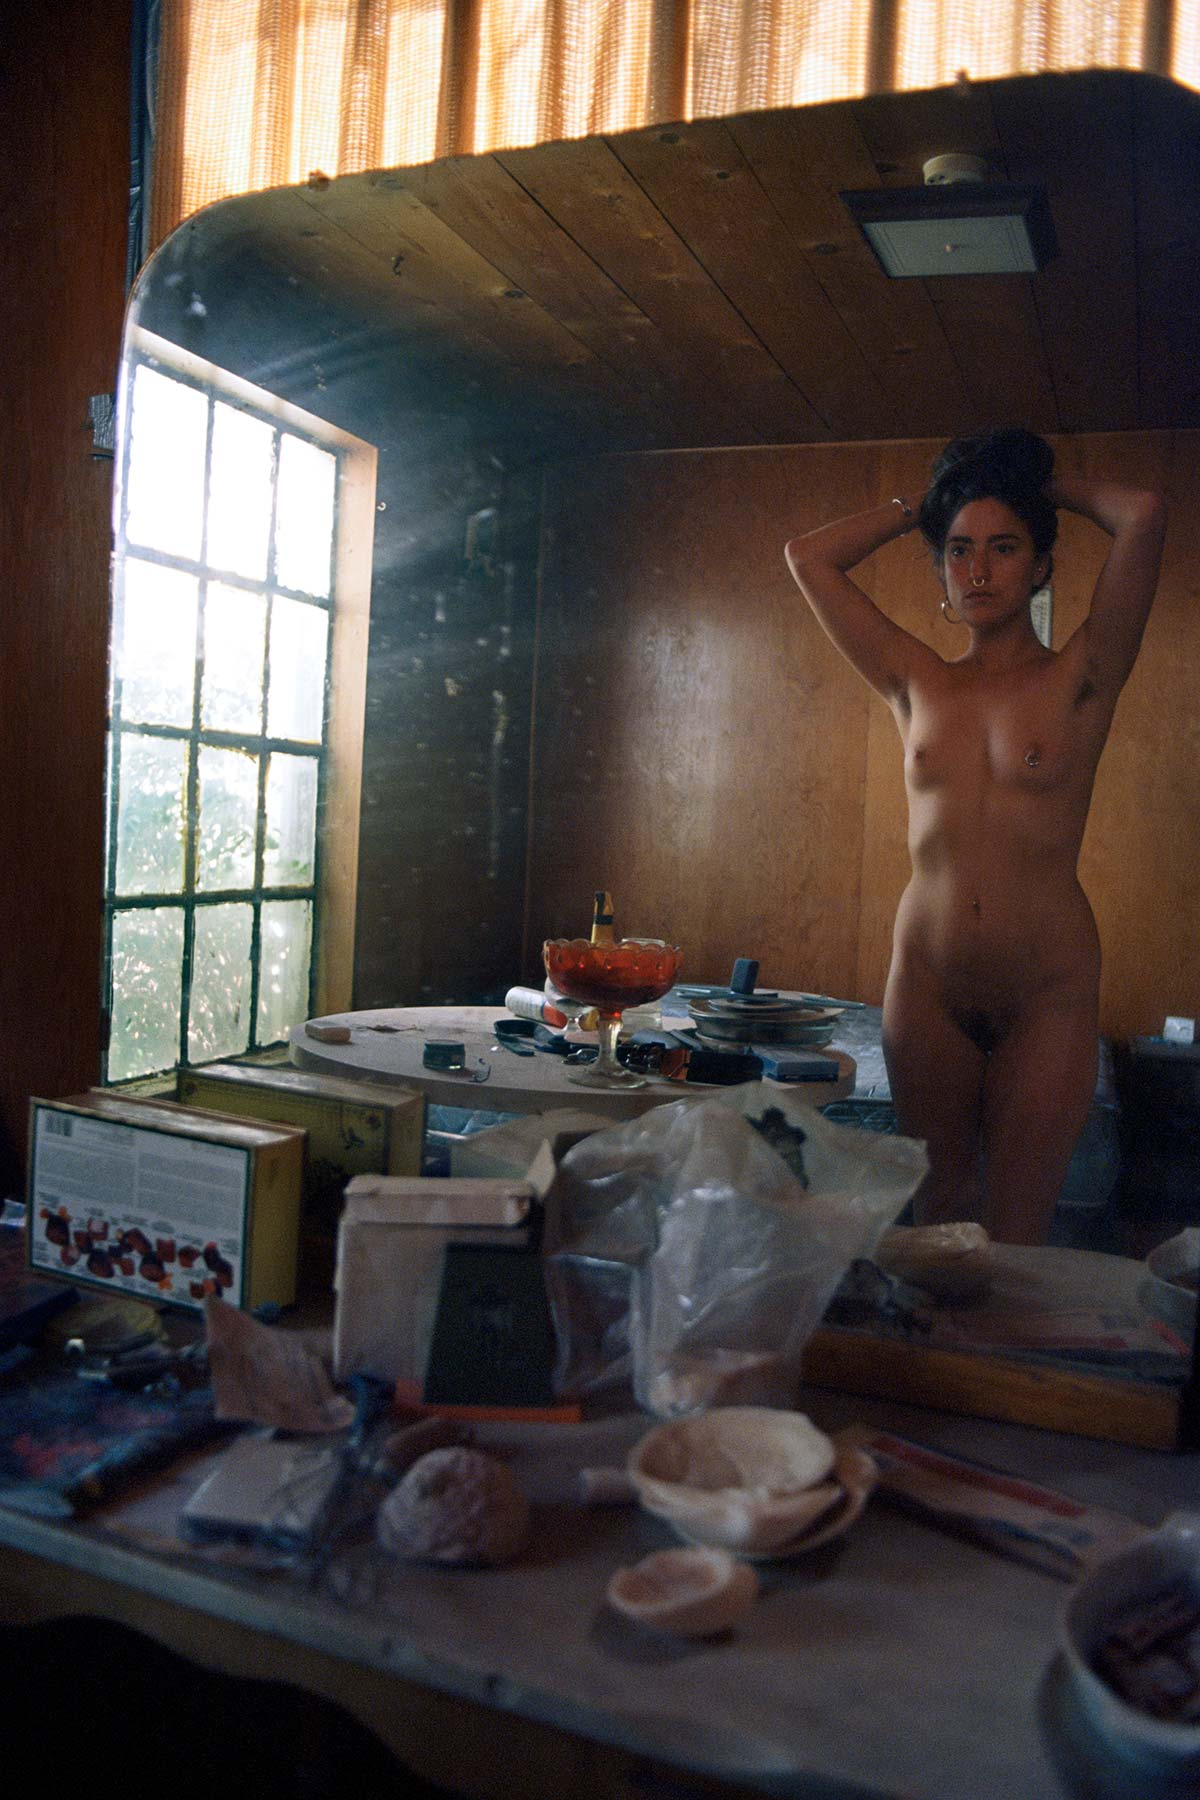 Nude woman holding her long hair gathered to the top of her head looking at herself in a mirror in a dirty derelict space